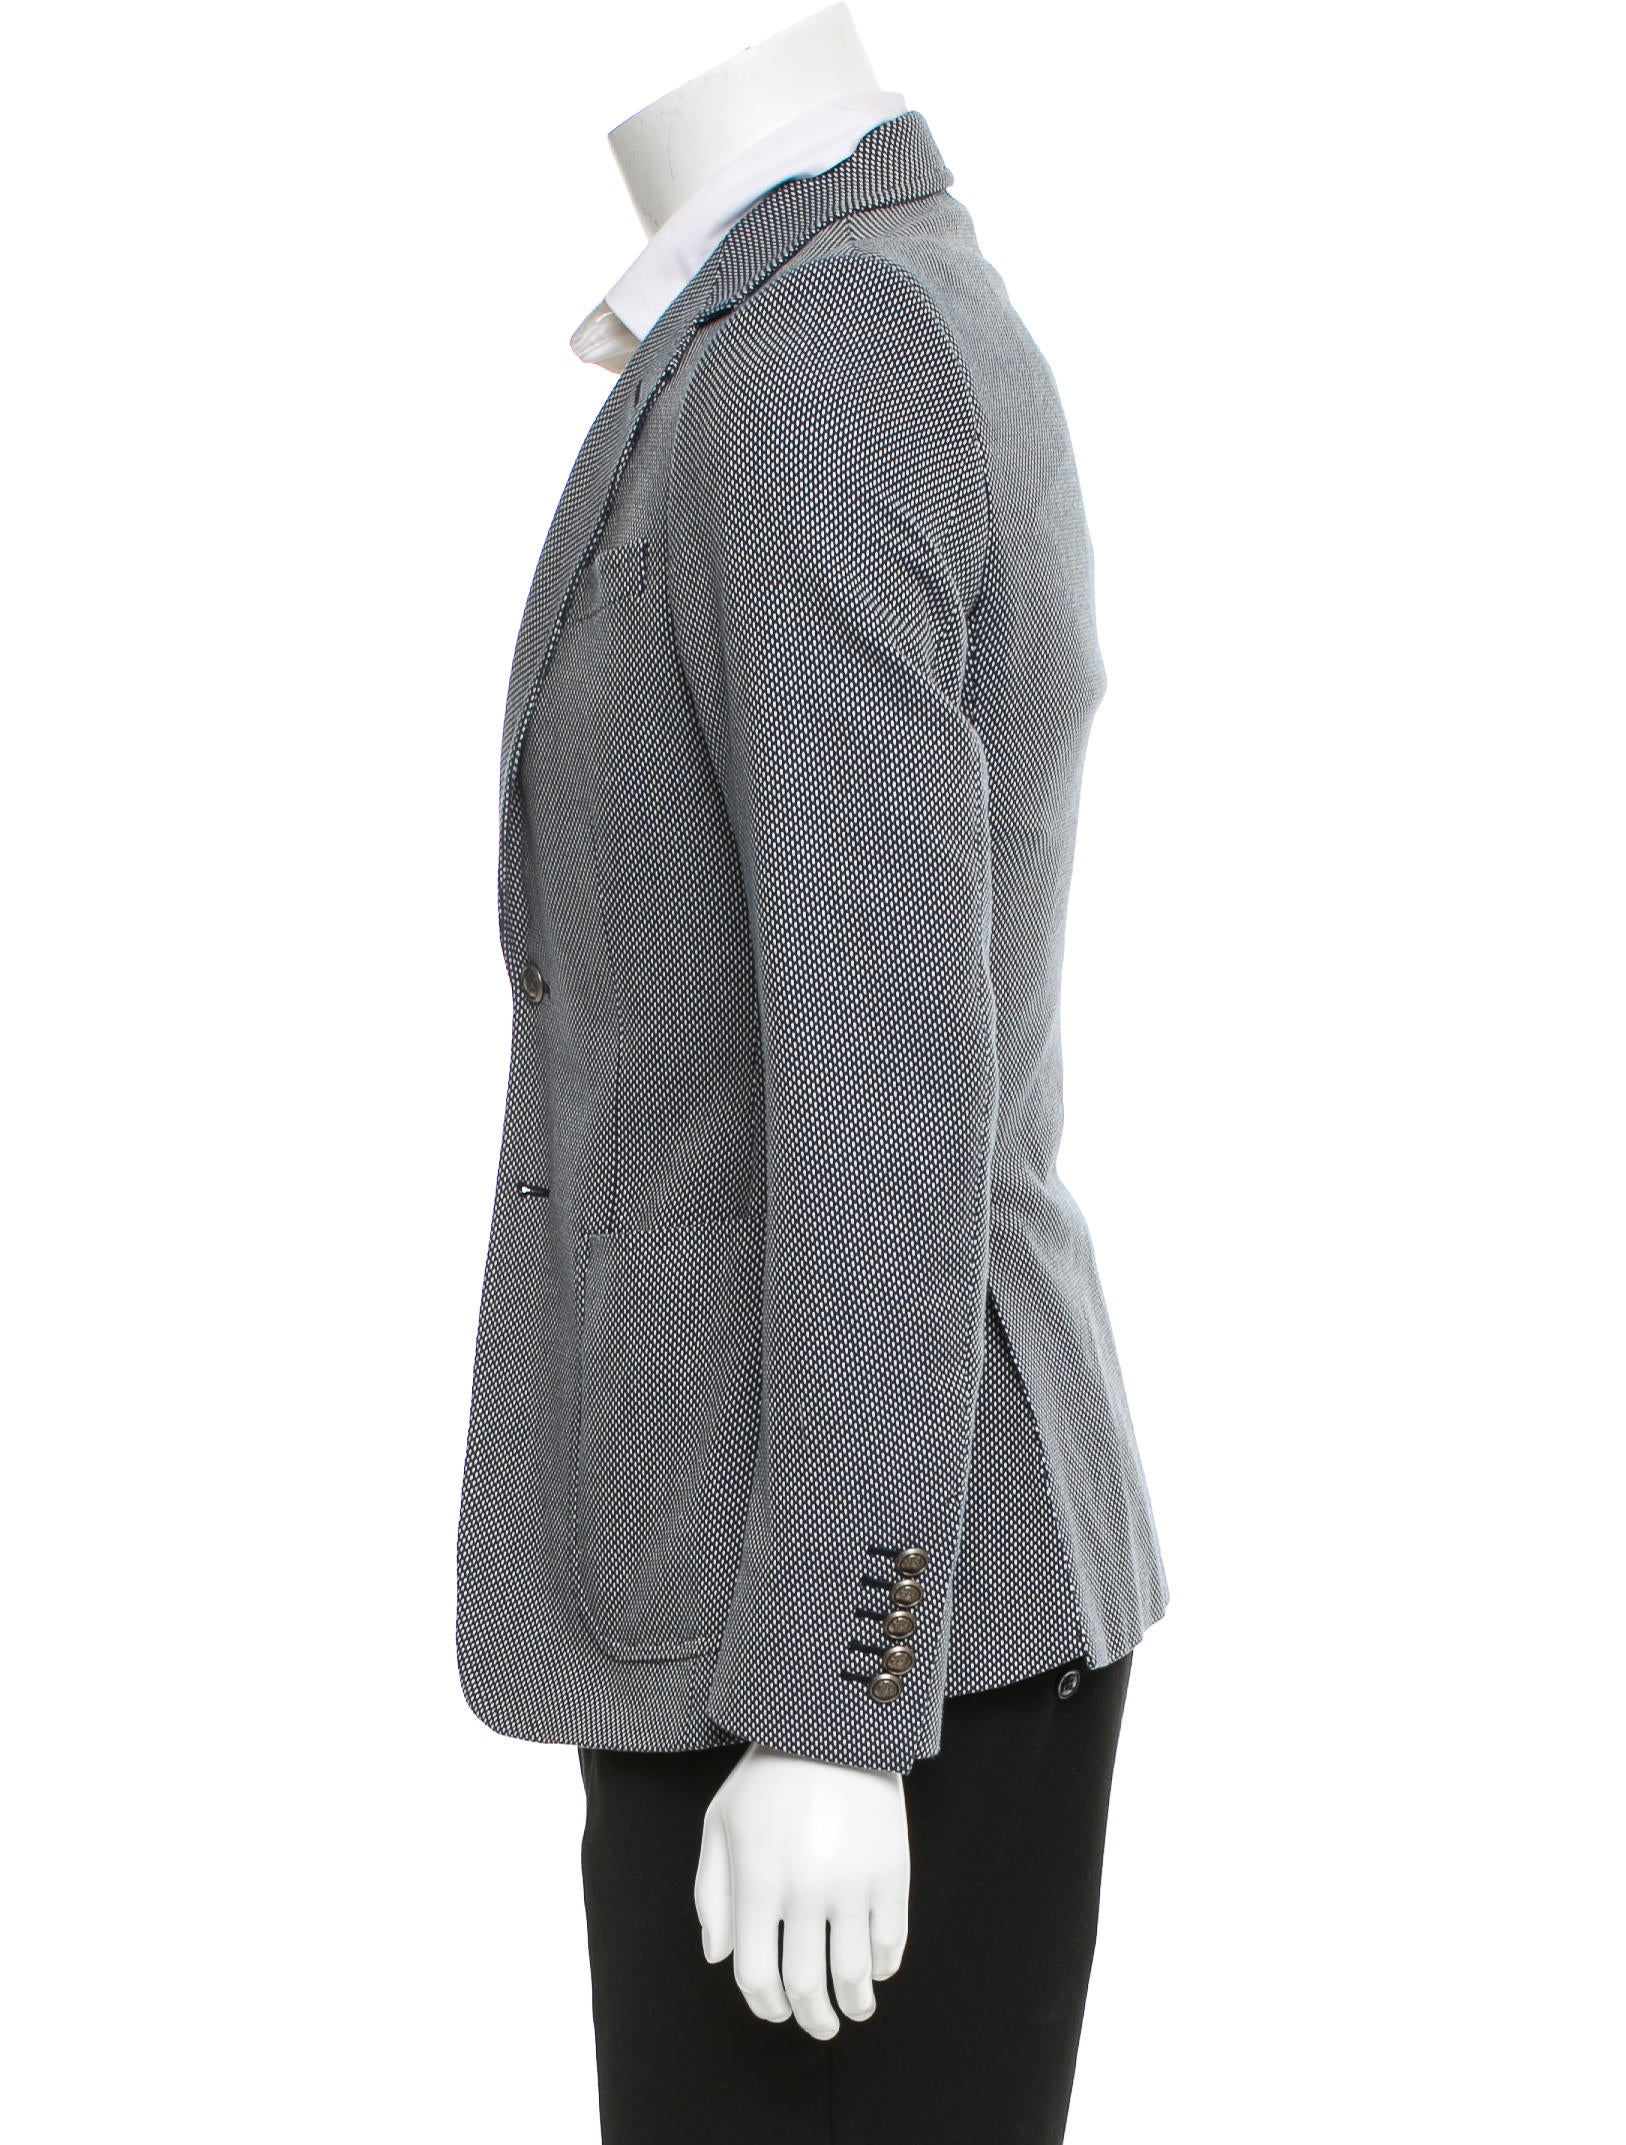 Gucci Two-Button Sport Coat - Clothing - GUC180231 | The RealReal